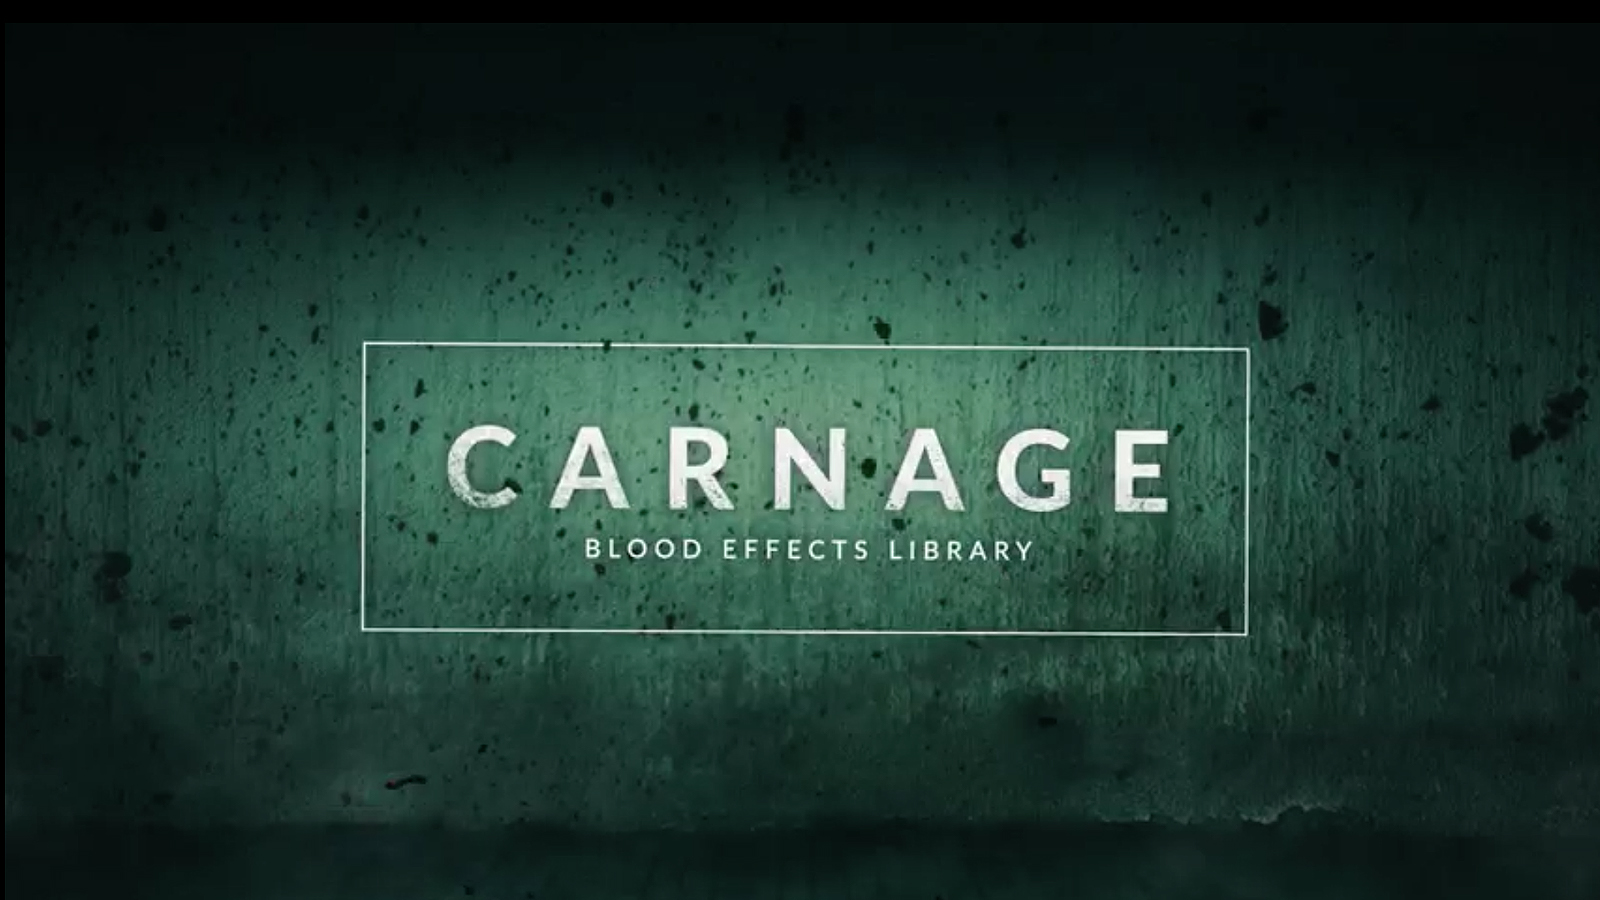 Carnage: 296 Blood Video Effects for Gory & Horror Scenes